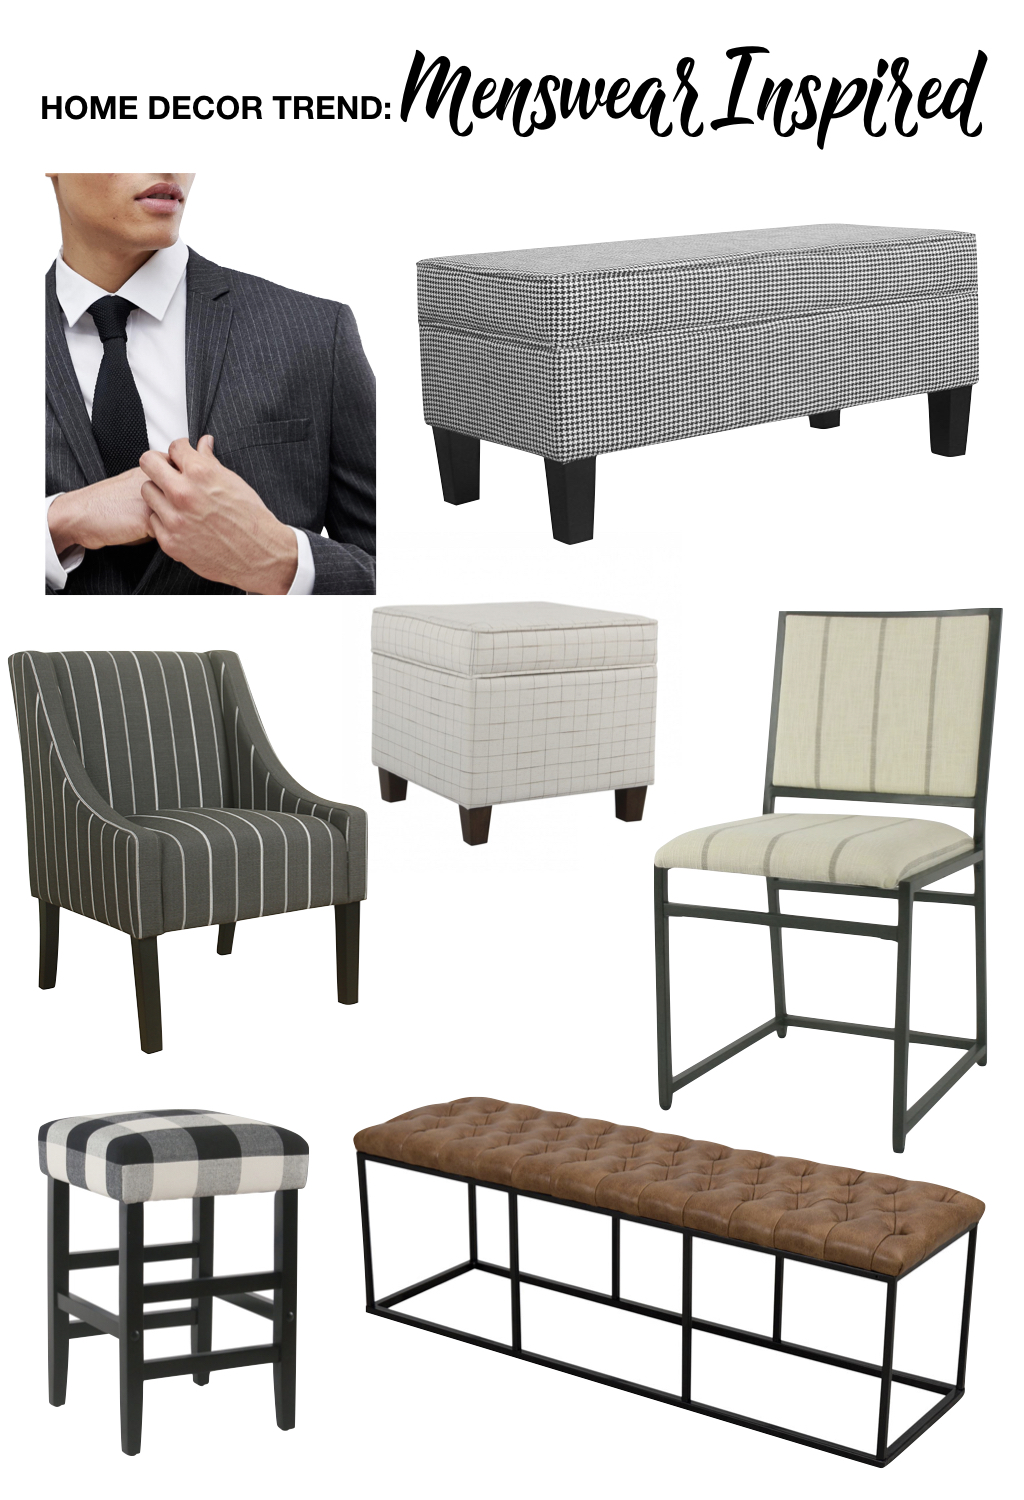 fall home decor trends | menswear inspired home decor | windowpane ottoman, pinstripe armchair